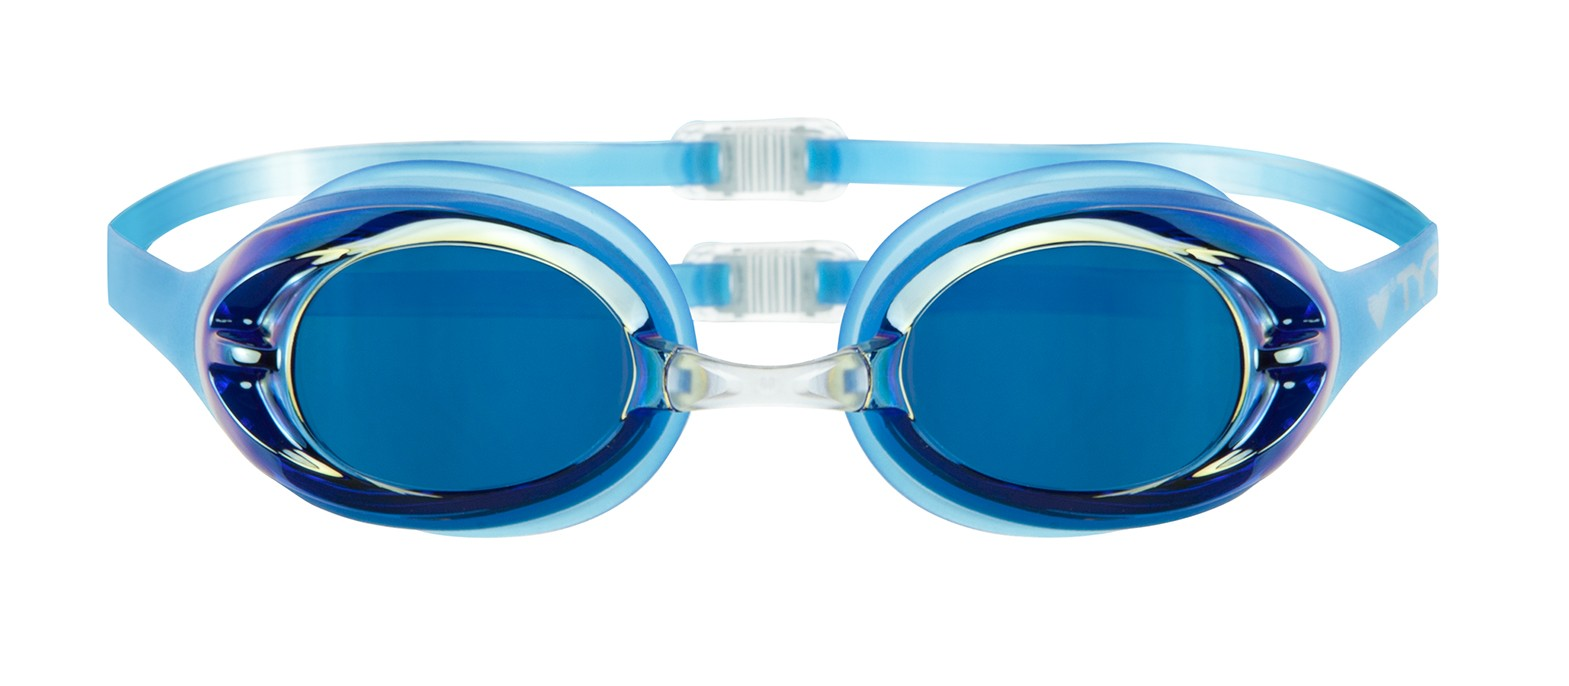 Swimming Goggles PNG - 51664